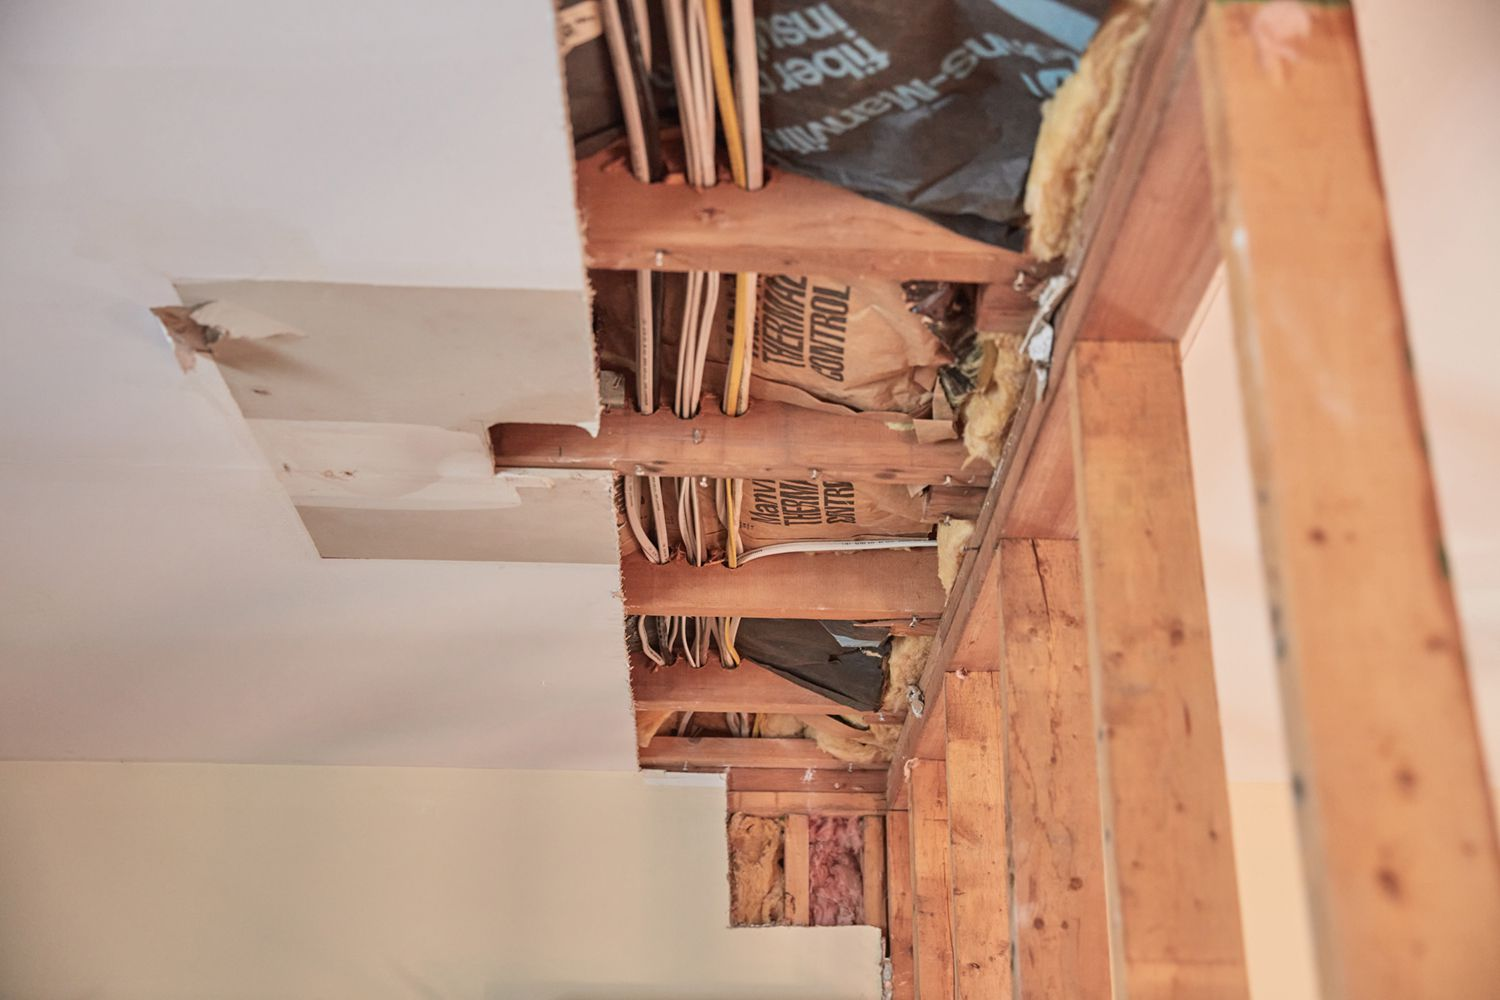 Wooden joints exposed in ceiling of load bearing wall